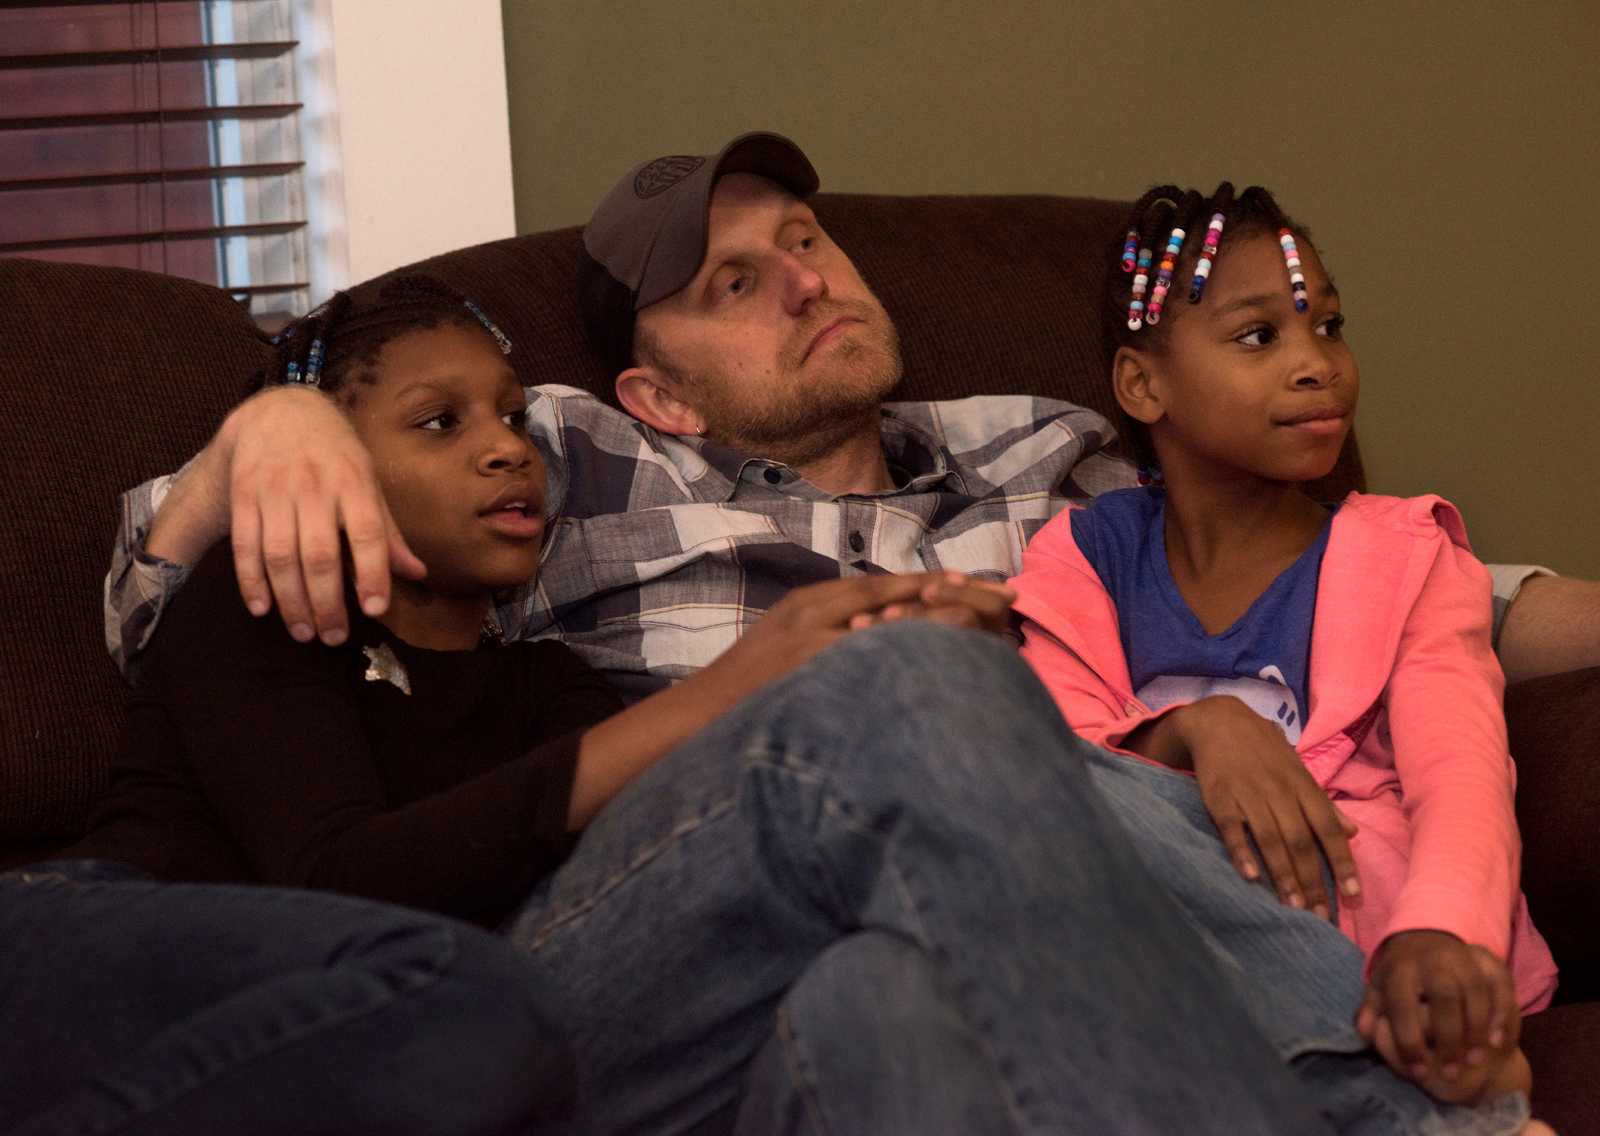 Carria (left) and 10-year-old Akeelah (right) cuddle with their father, John Rooke, following a family dinner at their Observatory Hill home. Christi and John Rooke have adopted seven children. (Photo by Martha Rial/PublicSource)